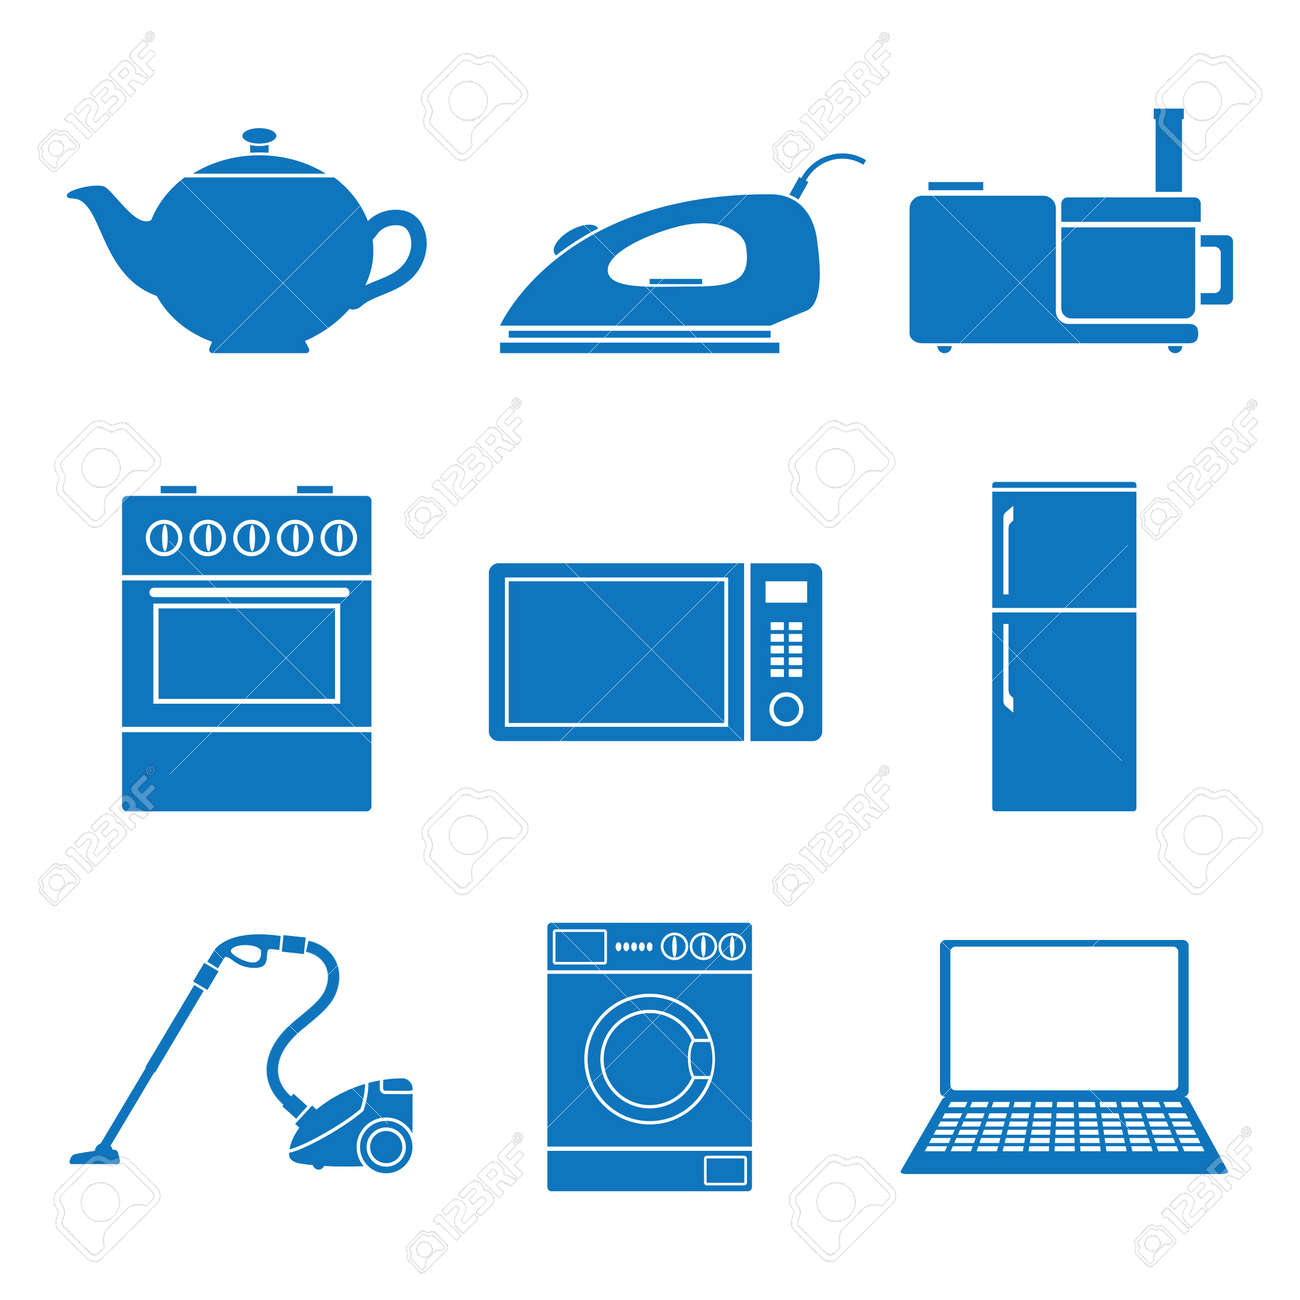 Vector illustration icons on appliances Stock Vector - 12792958